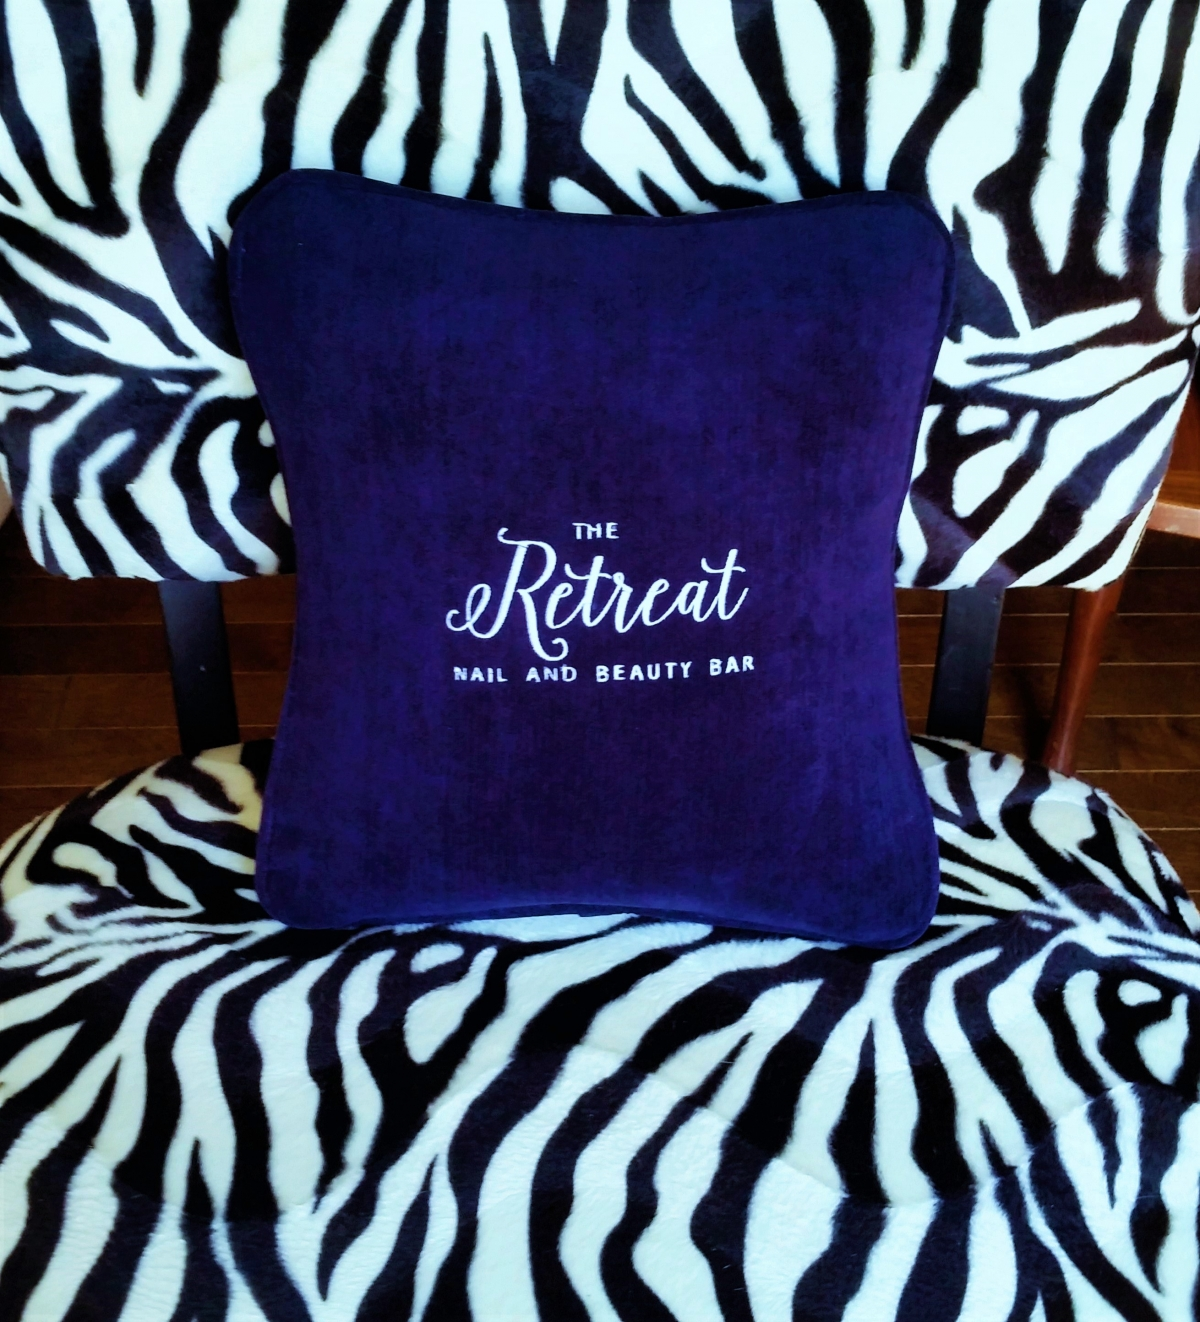 Comfee Vibrating Cushion Now available with Custom Embroidery!